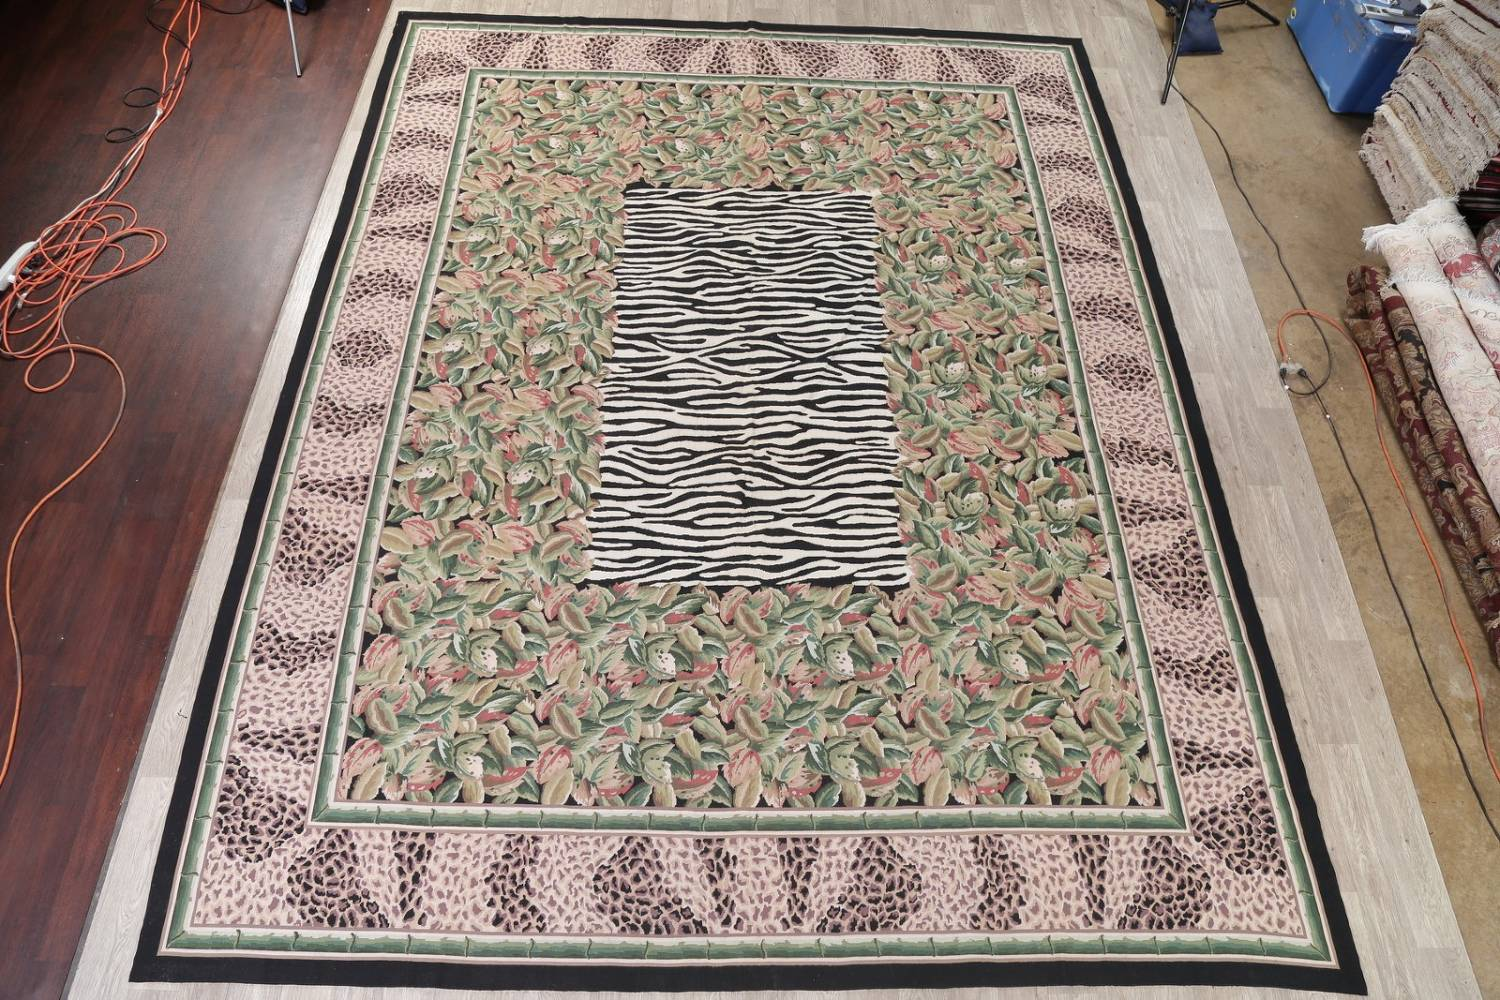 Transitional Animal Print Aubusson Oriental Hand-Woven Area Rug 12x15 image 2